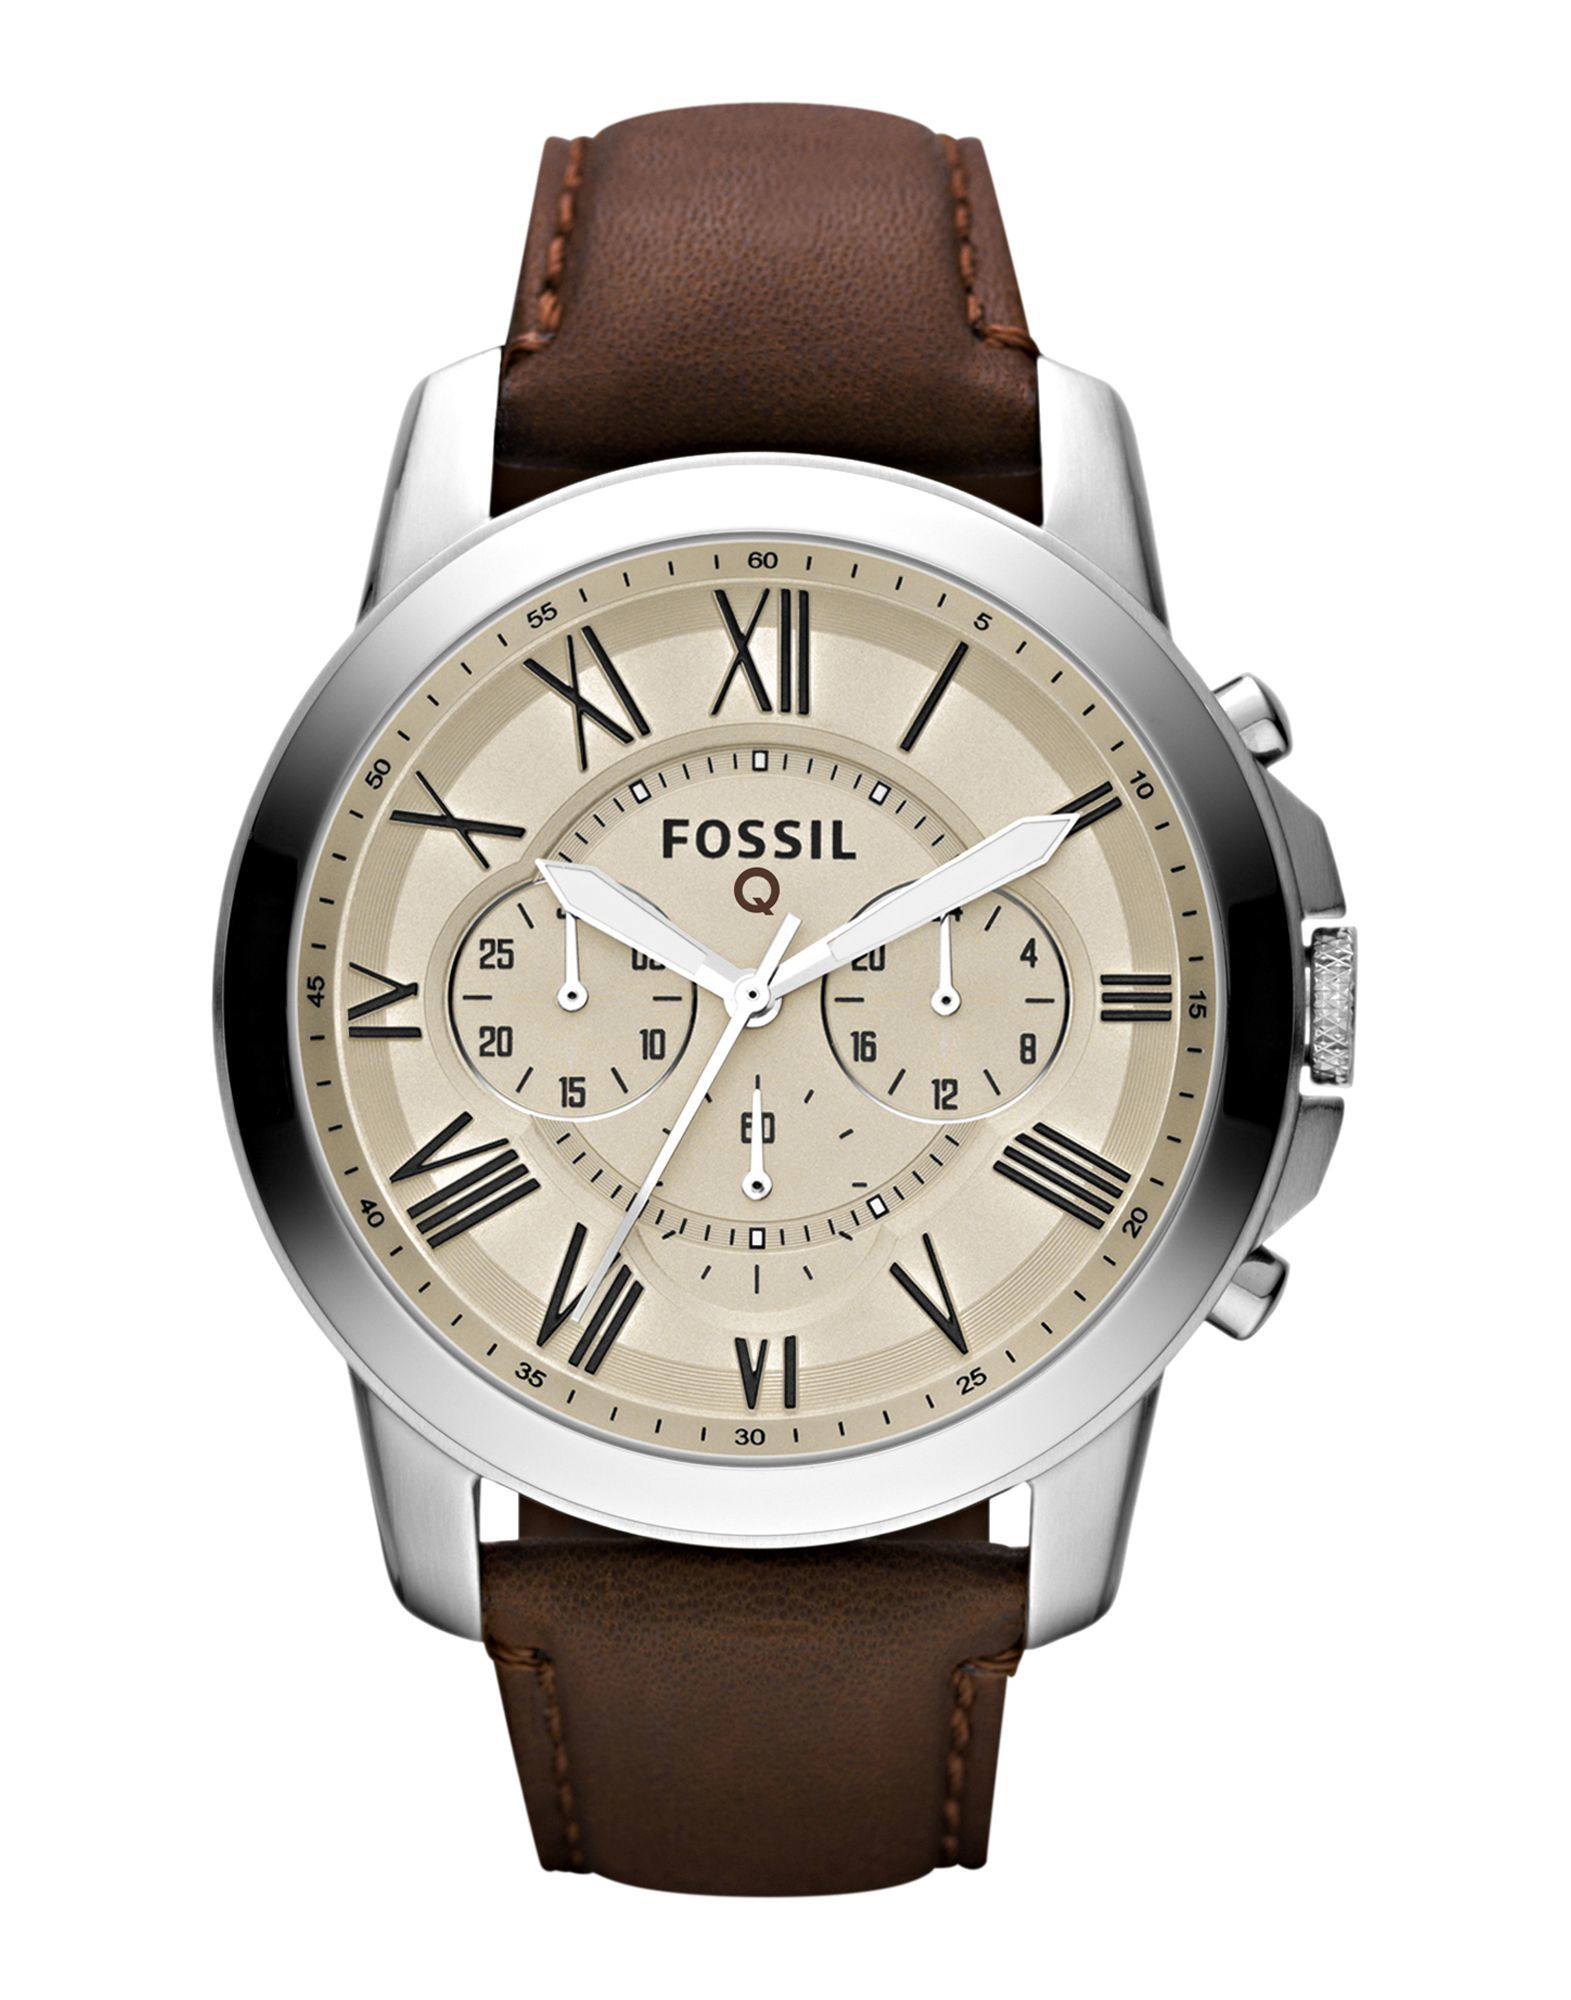 A rich brown leather strap and a silver-tone case complement each other nicely in this Q Grant smartwatch from Fossil.